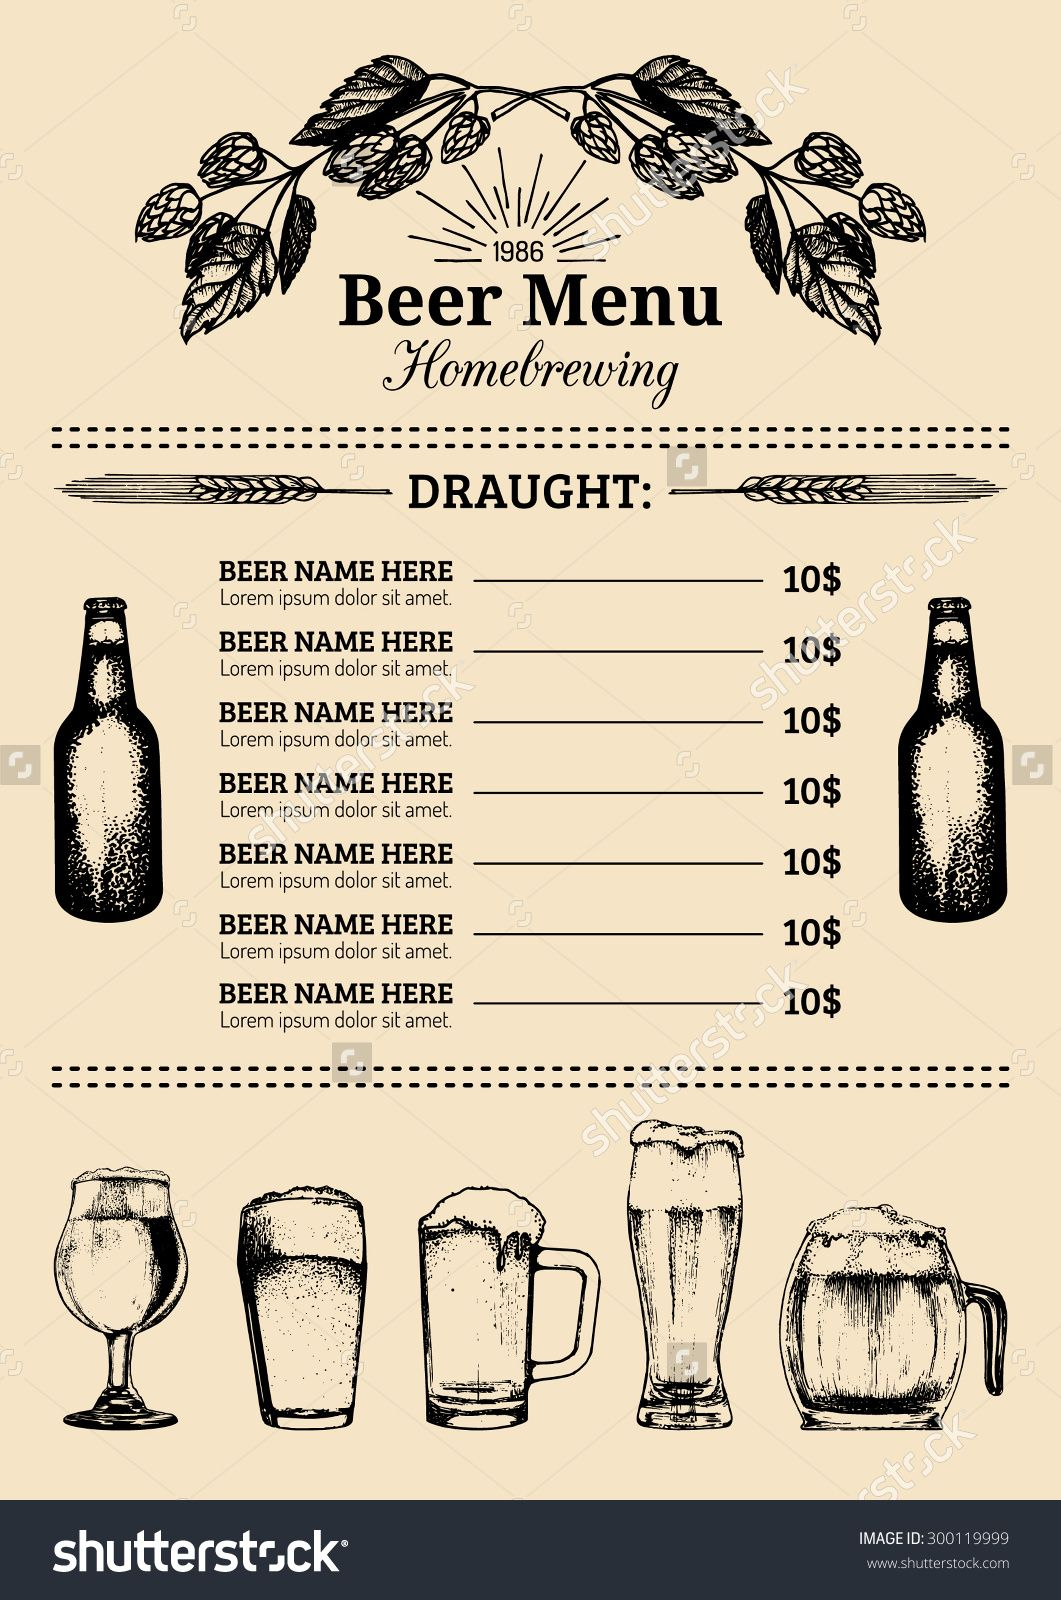 stockvectorbeermenudesigntemplatevectorbarpubor – Beer Menu